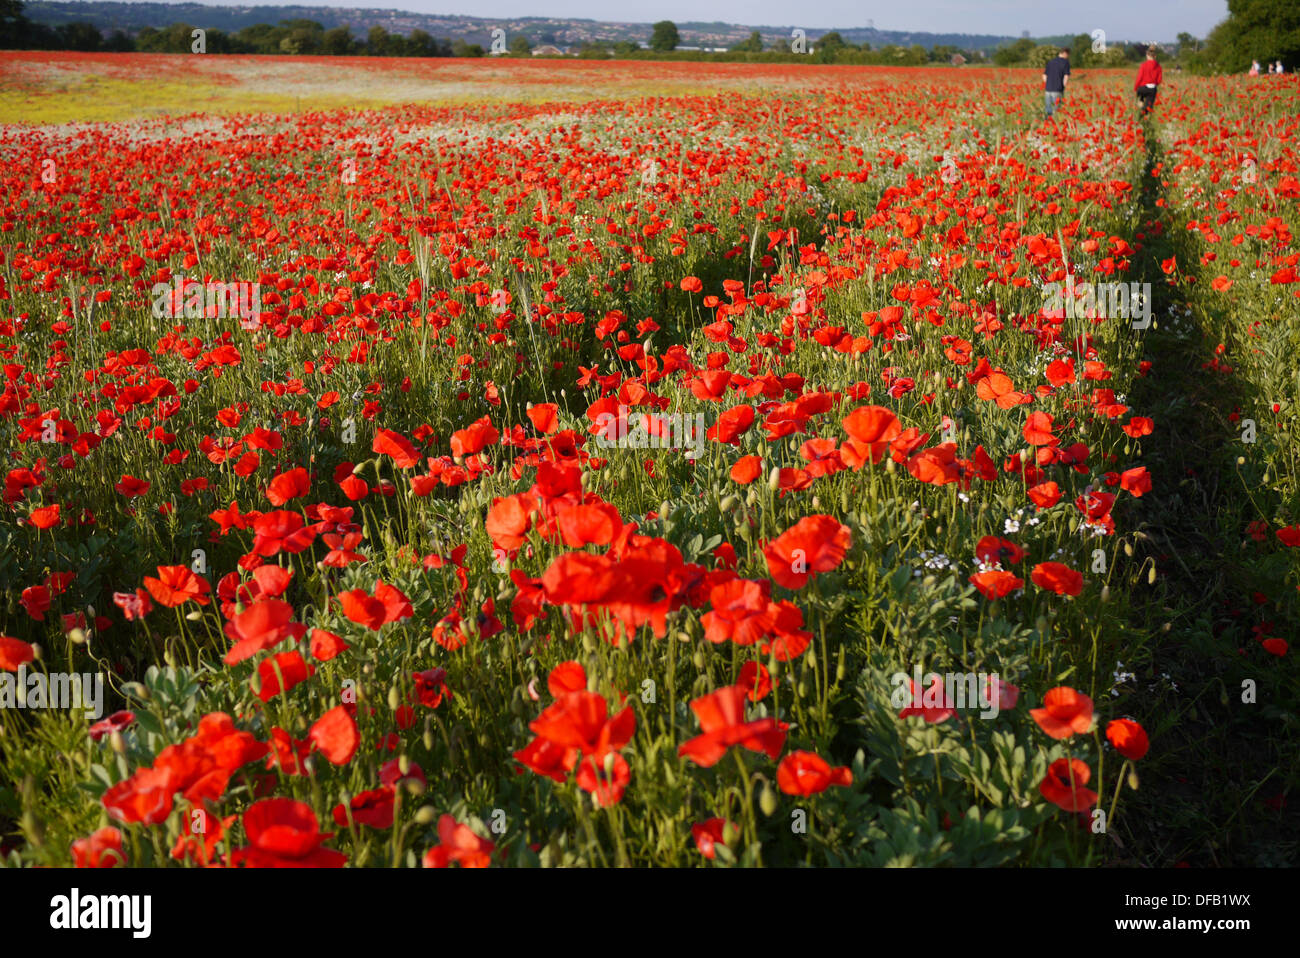 men walking through poppy field - Stock Image